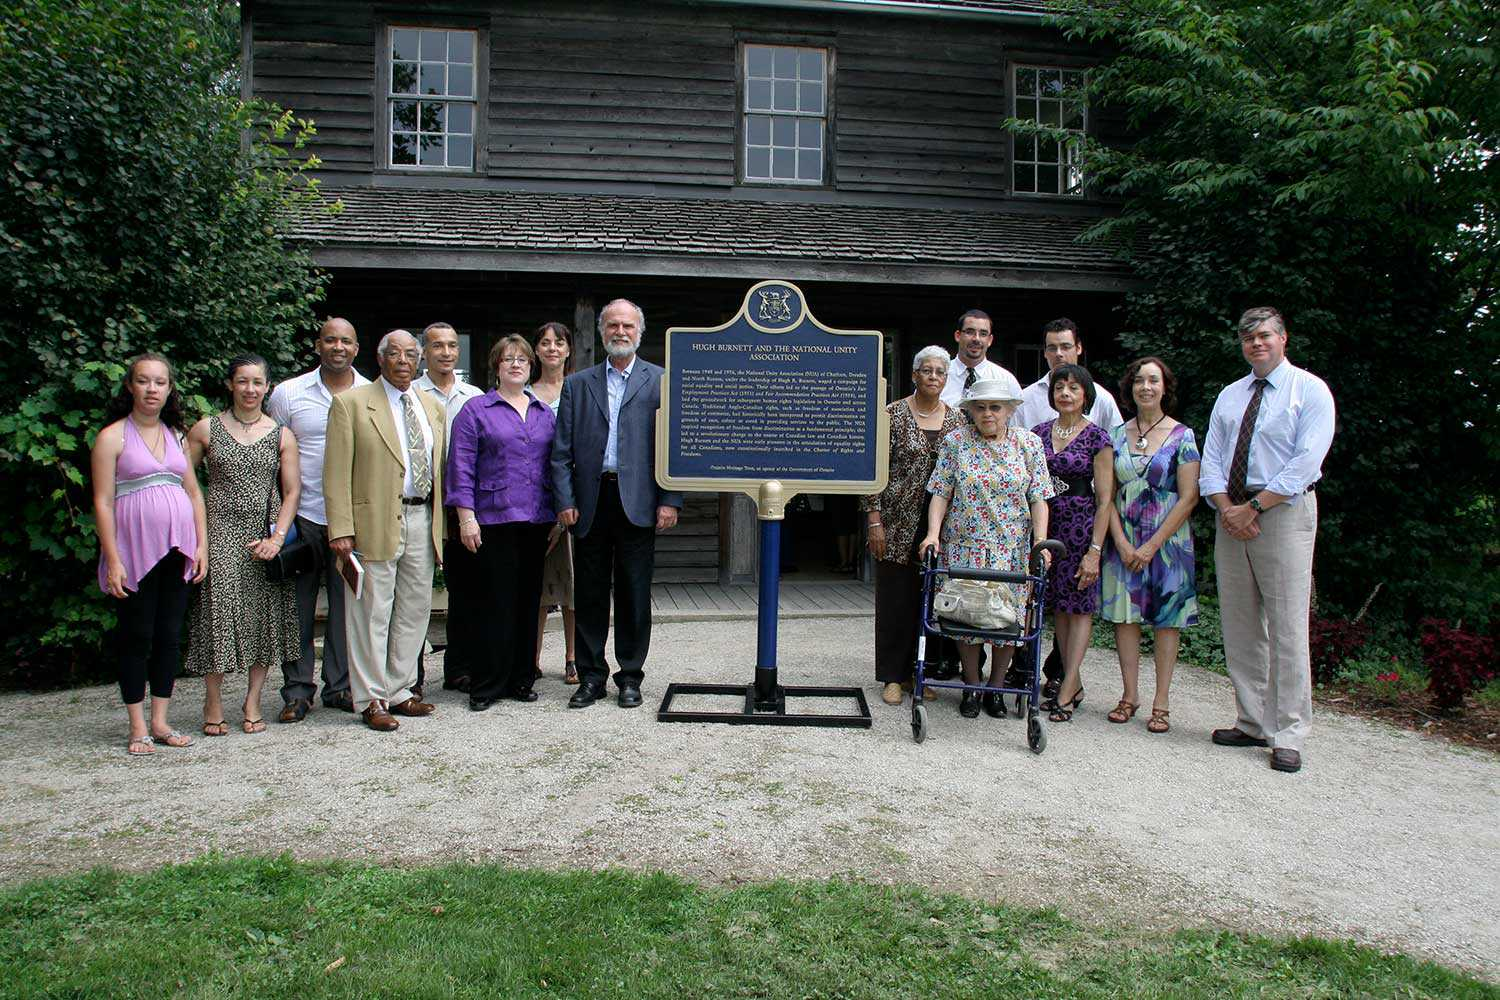 A provincial plaque was unveiled on July 31, 2010 as part of the Emancipation Day event at Uncle Tom's Cabin Historic Site in Dresden to commemorate Hugh Burnett and the National Unity Association.